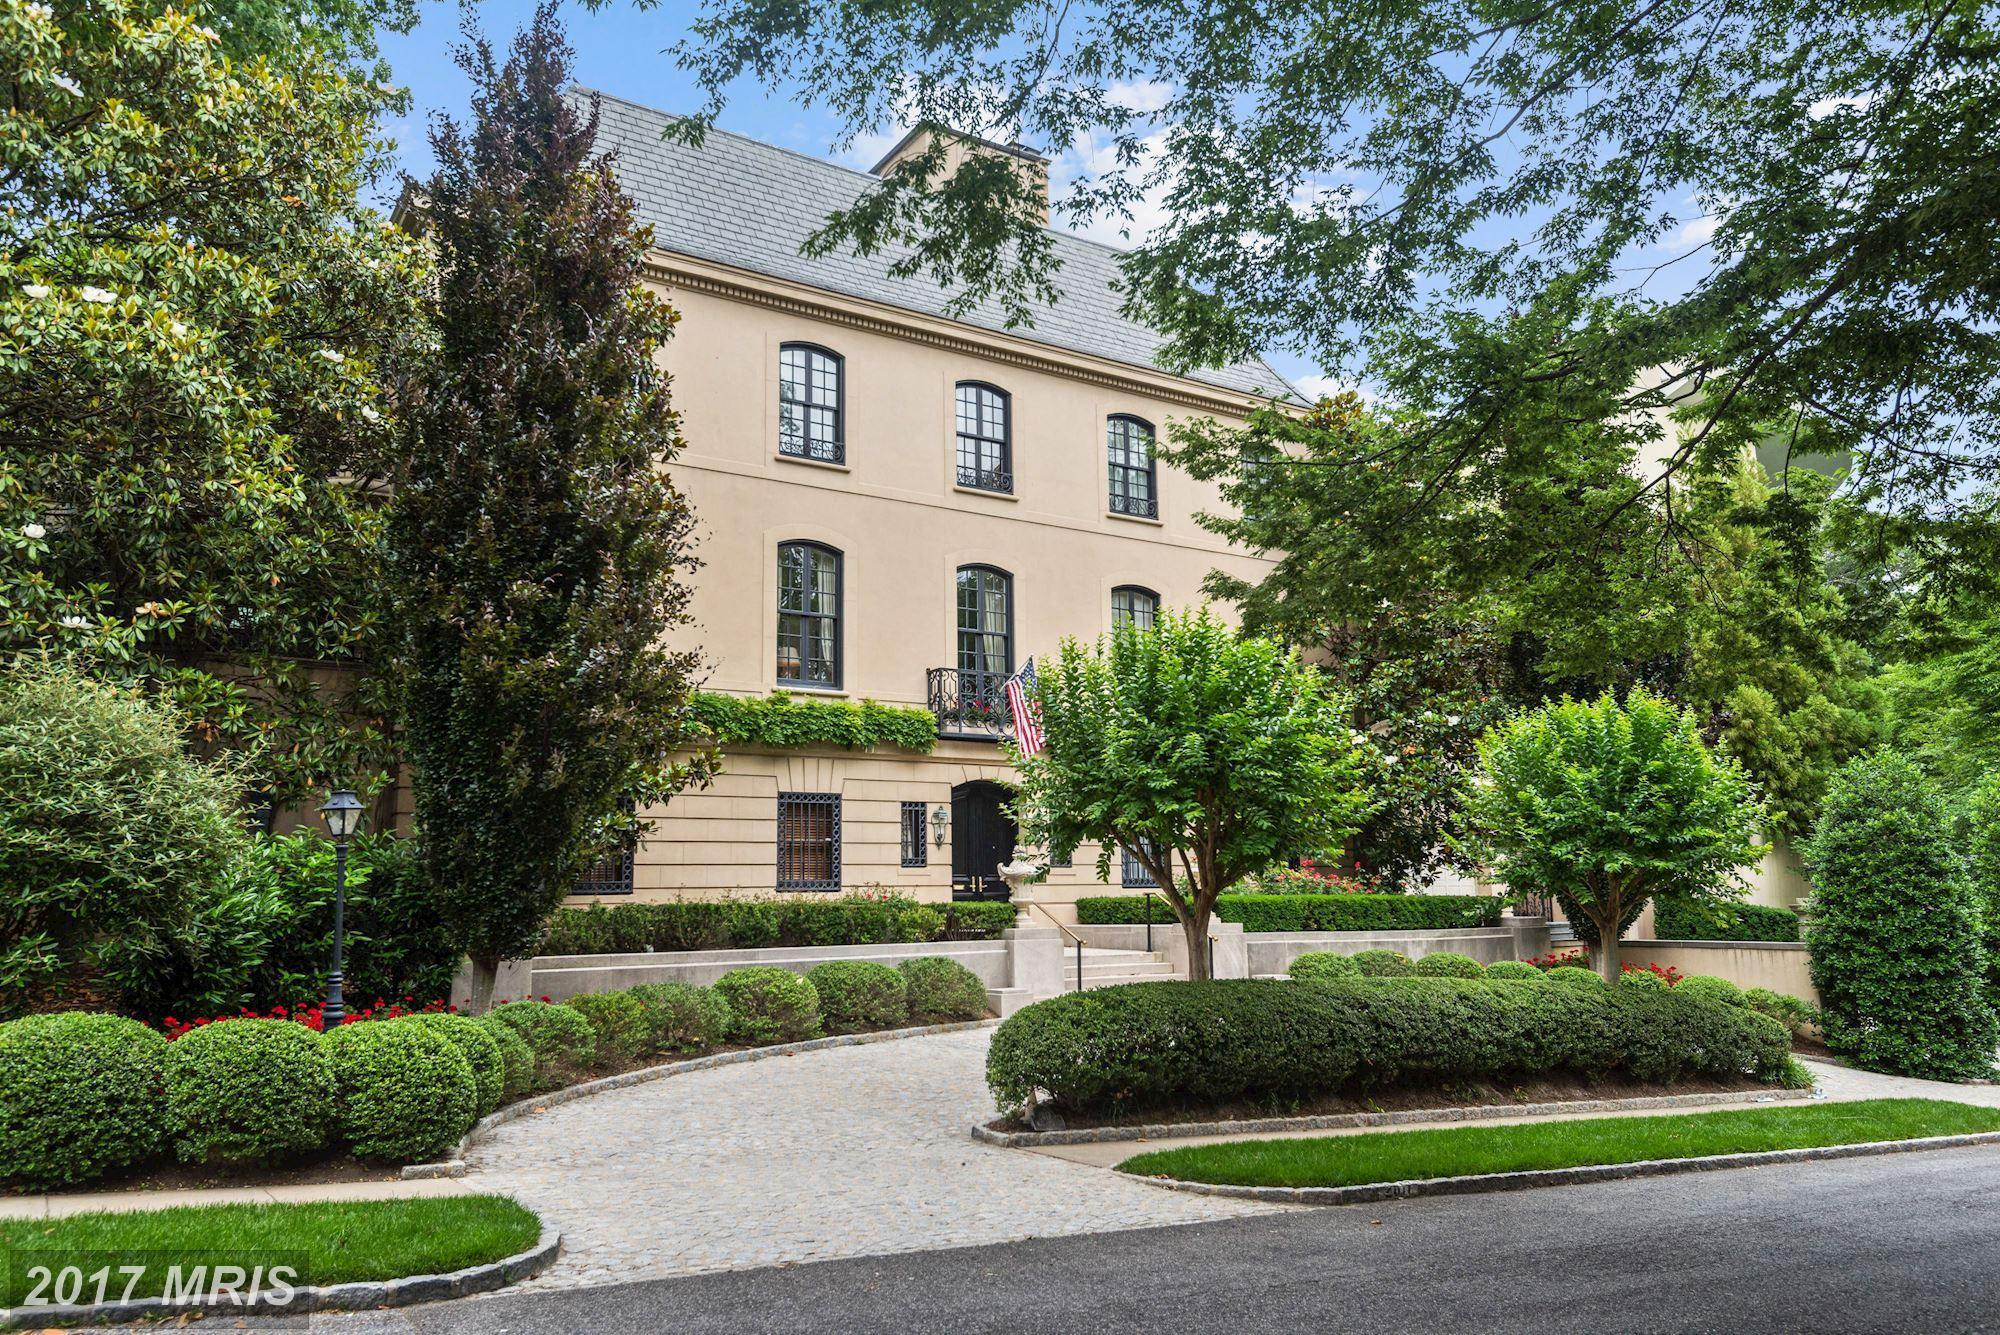 List price: $14,000,000 // Closing price: $14,000,000 // 7 bedrooms, 10 bathrooms // Built in 1962// Federal style // Neighborhood: Cleveland Park // Listing agent: Robert Hryniewicki of Washington Fine Properties // Selling agent: Cynthia Howar of Washington Fine Properties (Image: Courtesy Bright MLS)<br><p></p>